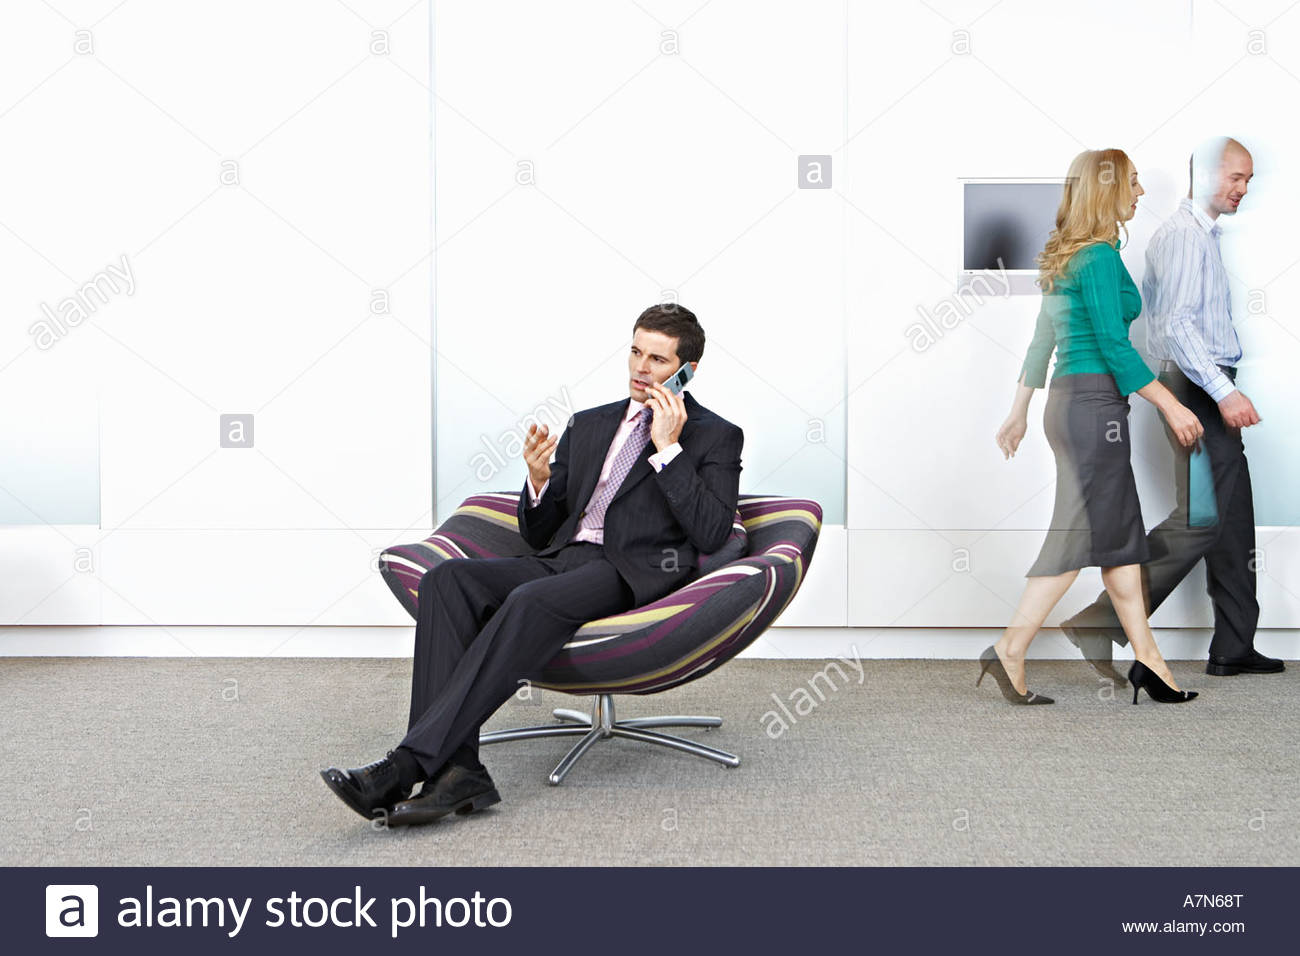 Businessman sitting in chair in office lobby using mobile phone colleagues walking in background - Stock Image